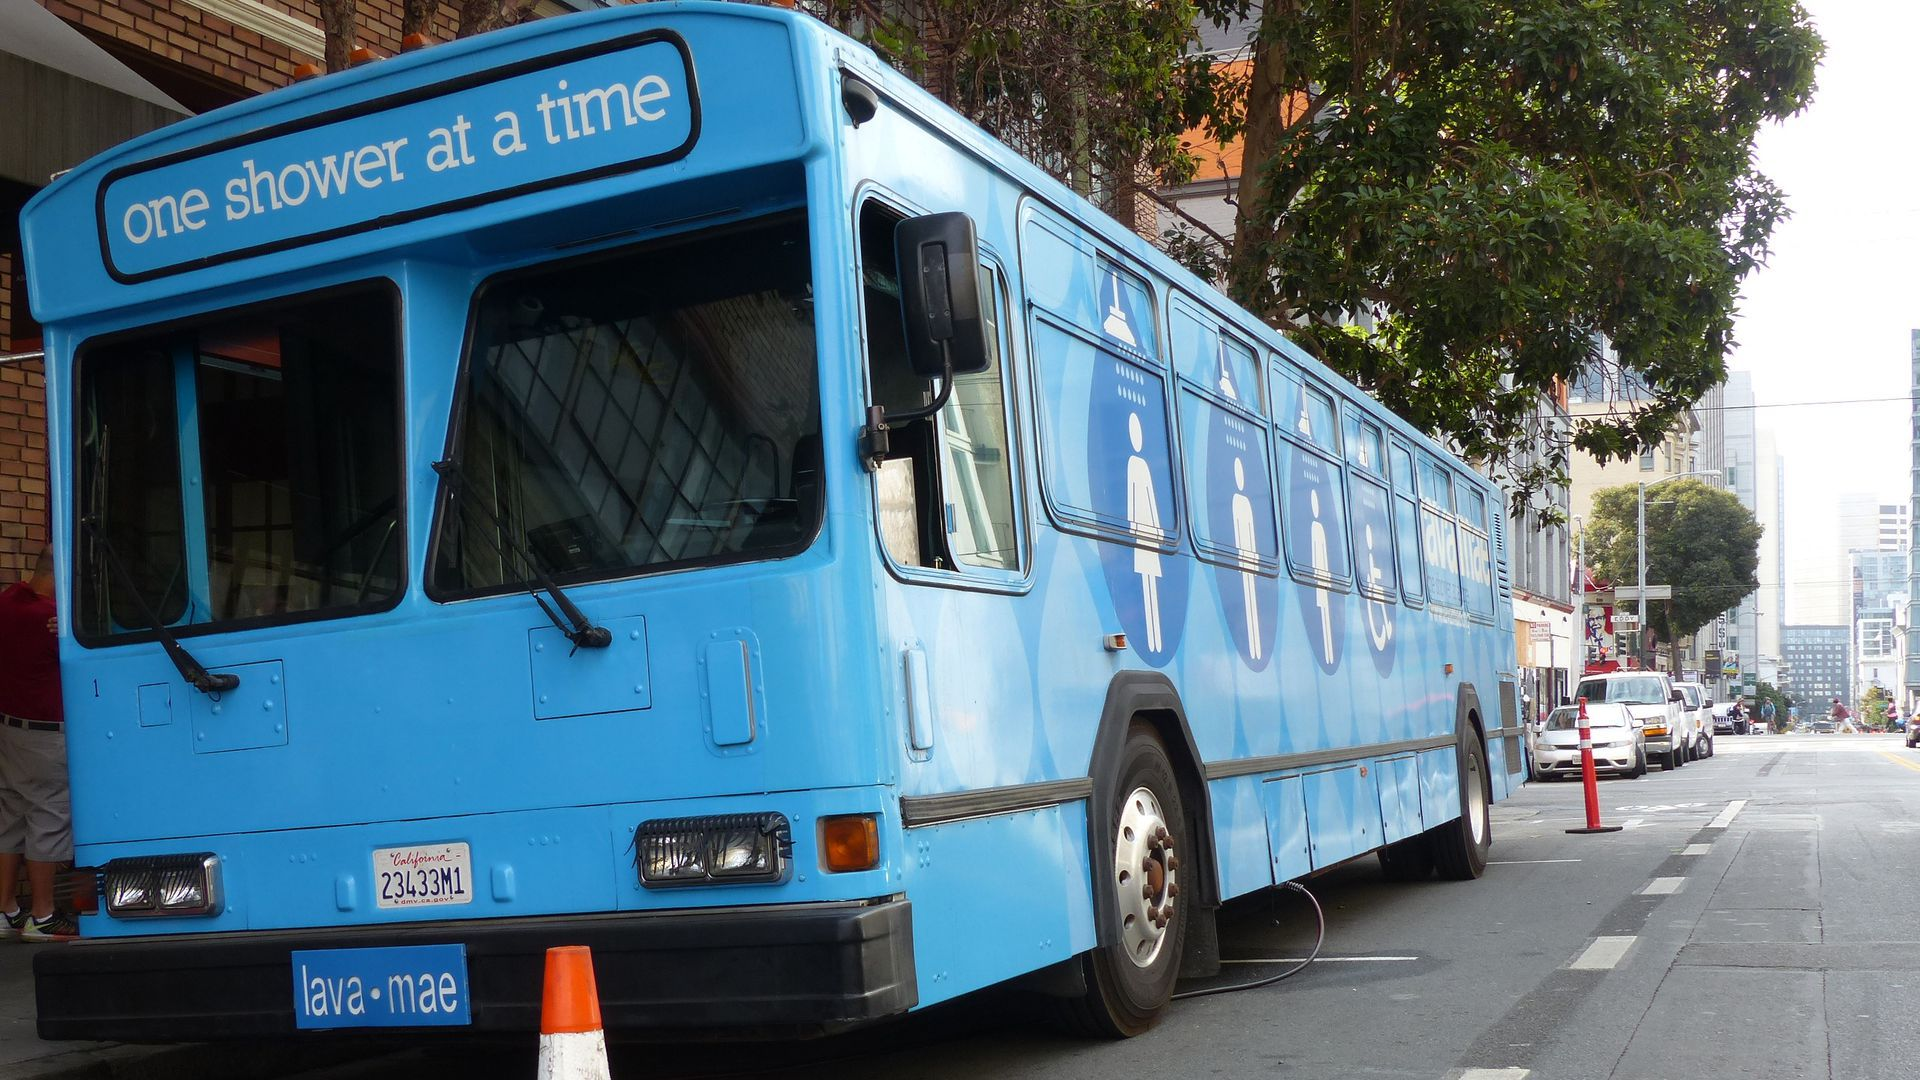 A decommissioned bus in San Francisco that was transformed into a mobile shower unit for homeless people.